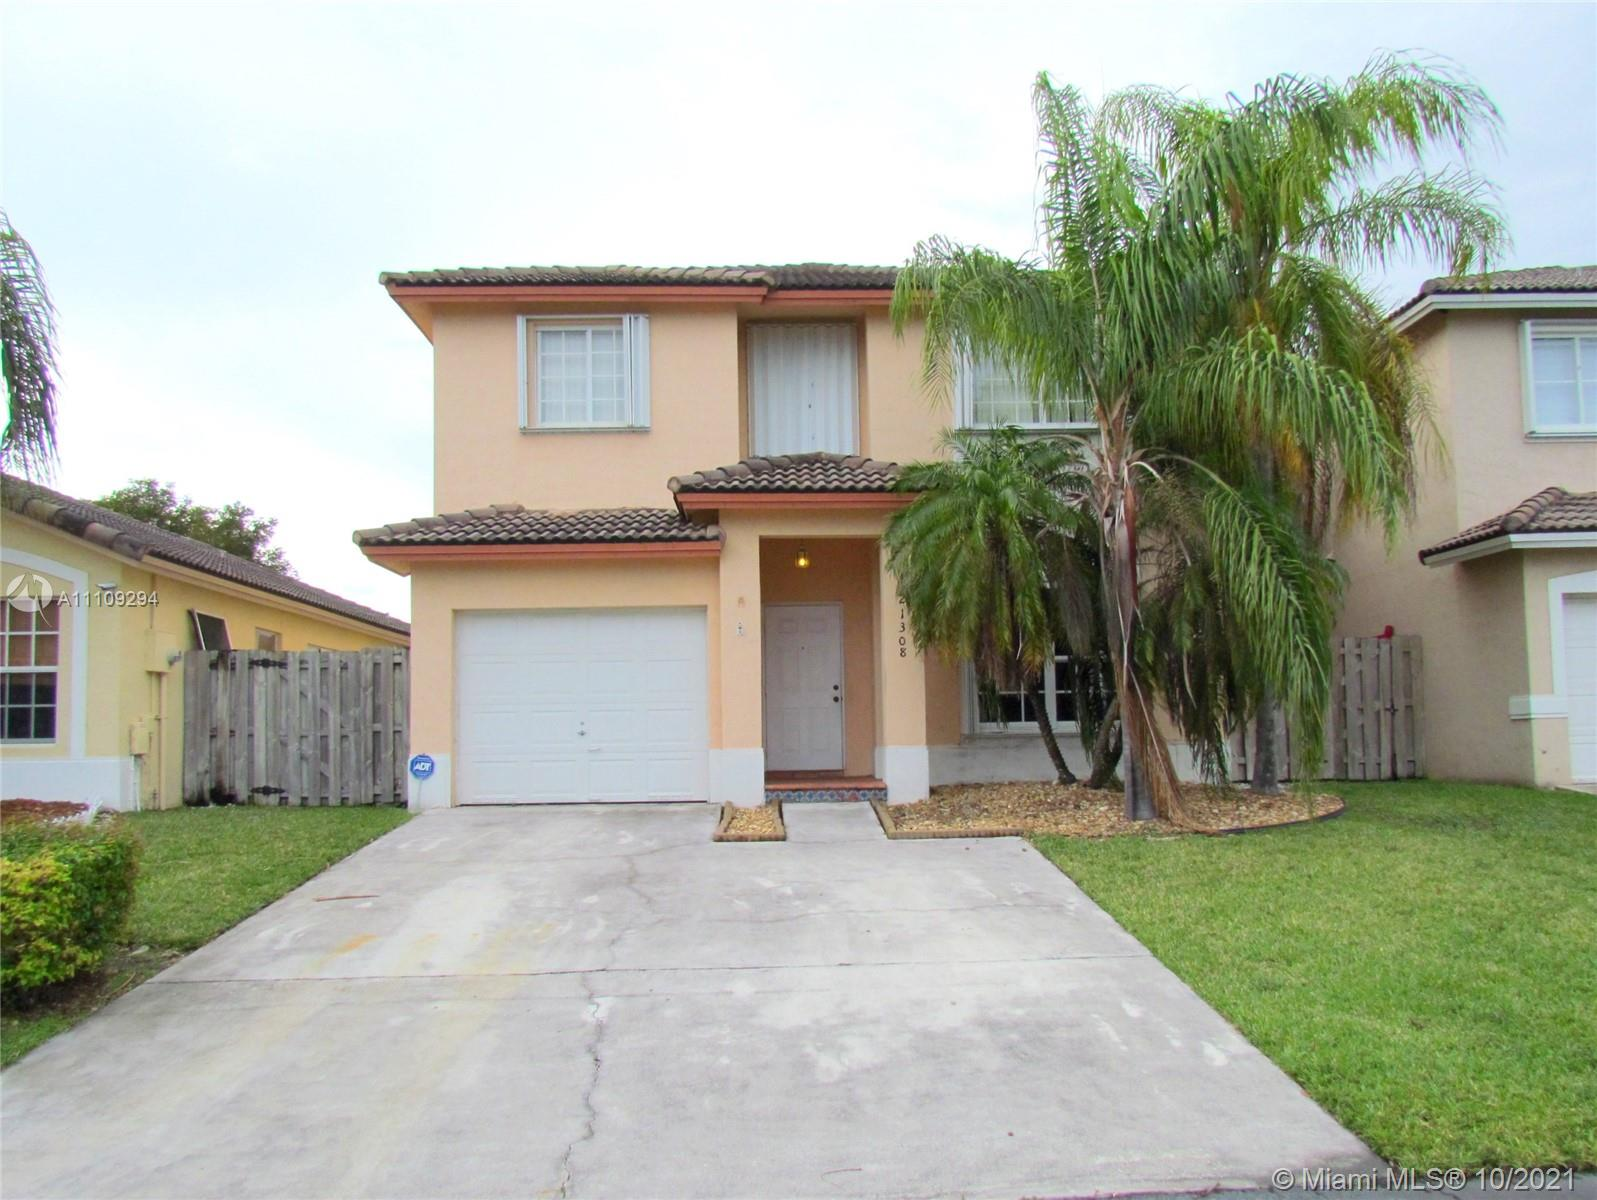 Single Family Home,For Rent,21308 SW 87 PL, Cutler Bay, Florida 33189,Brickell,realty,broker,condos near me